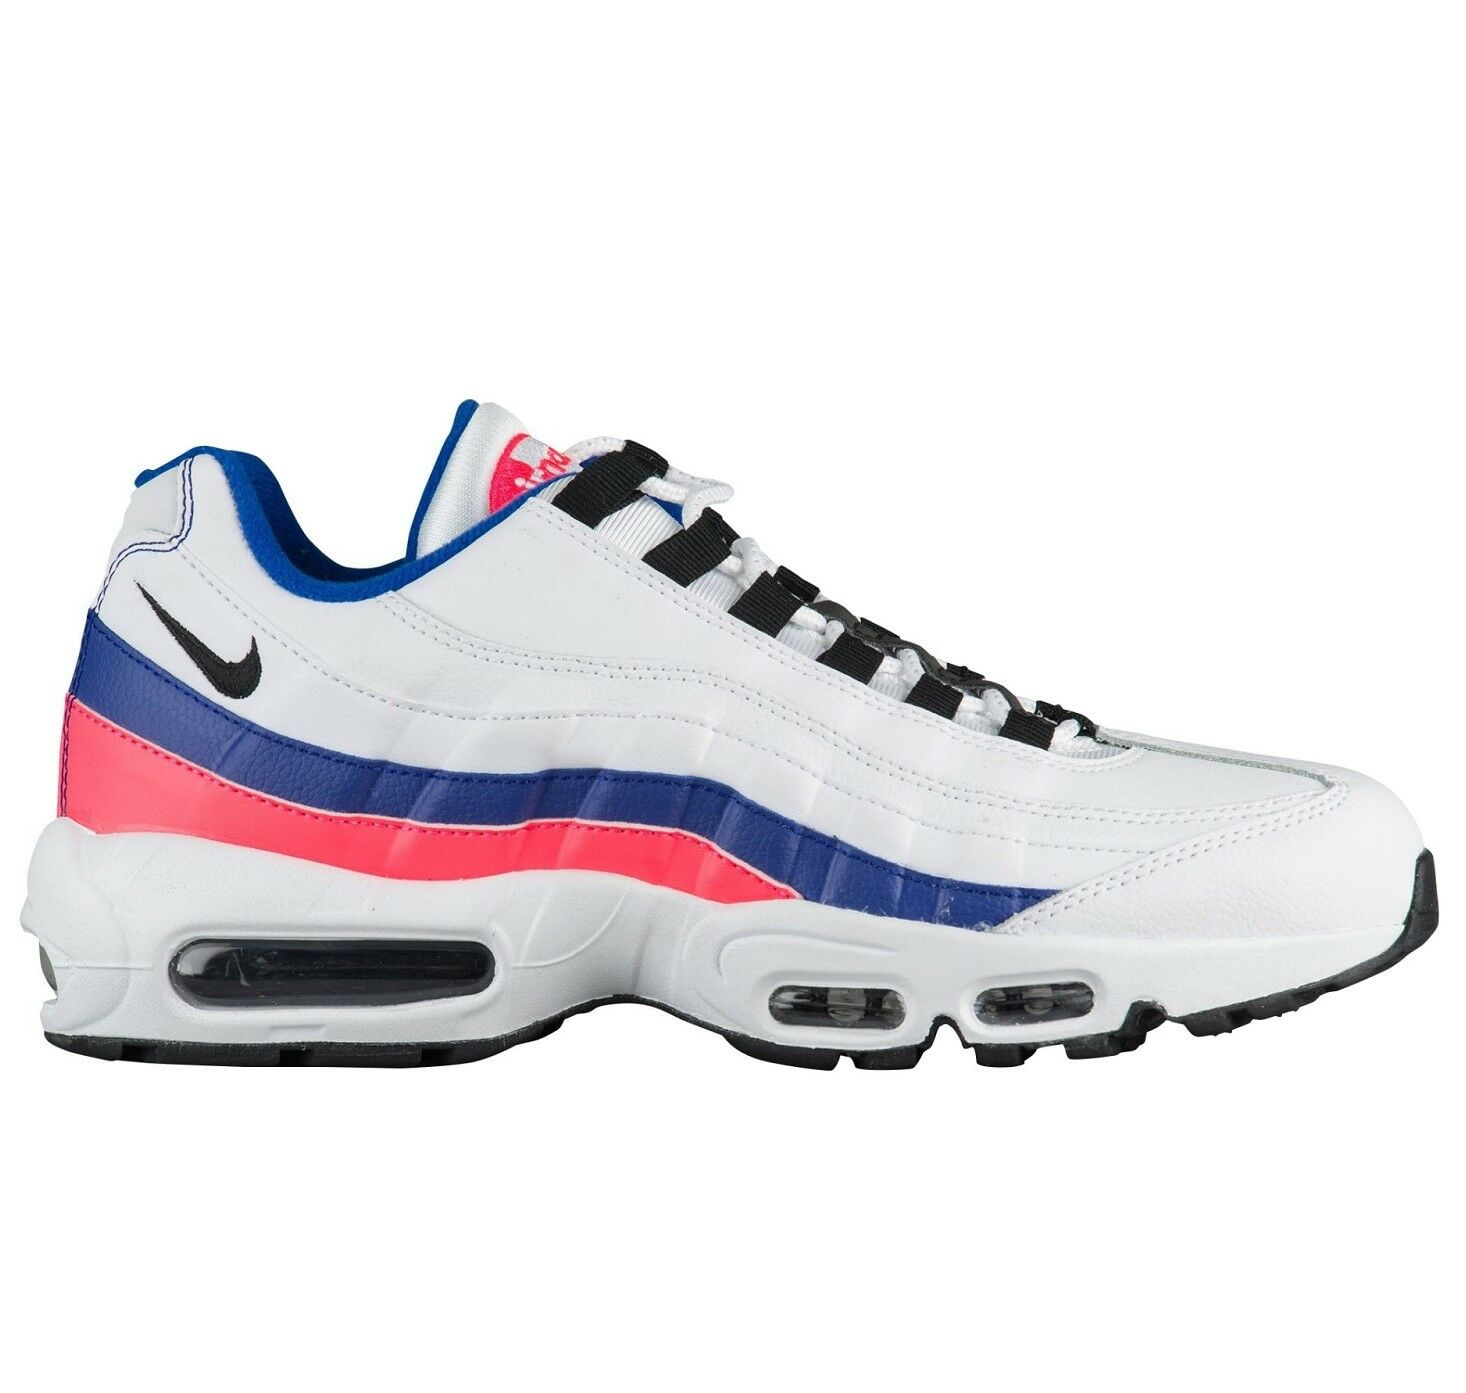 Nike Air Max 95 Essential Mens 749766-106 Ultramarine Solar Red Shoes Size 9.5